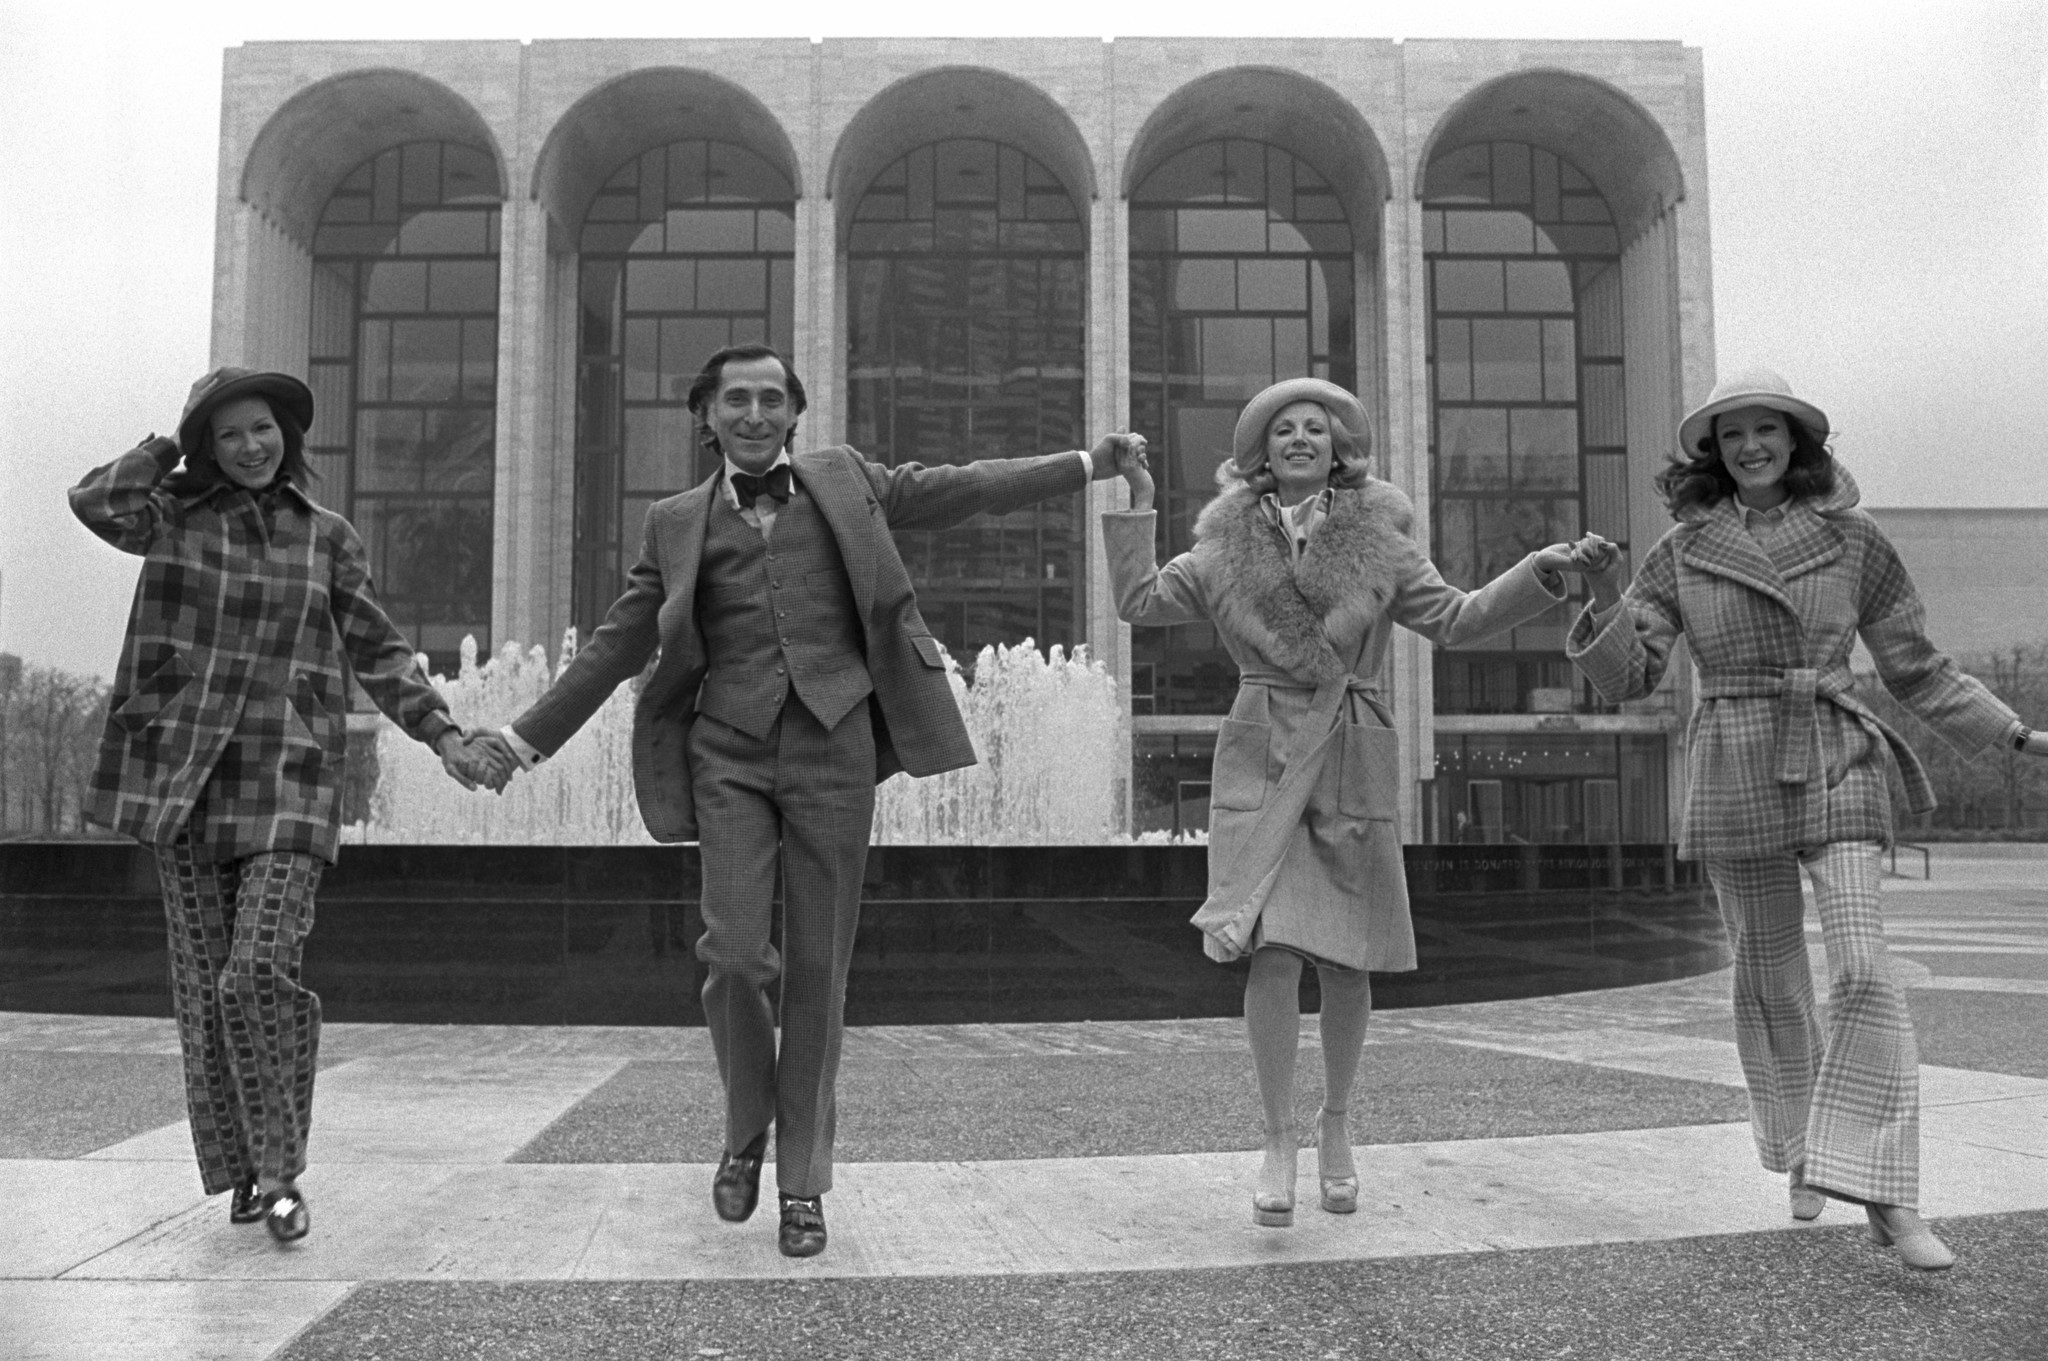 Fashion designer Kasper at Lincoln Center with with models wearing looks from his Fall 1972 collection.